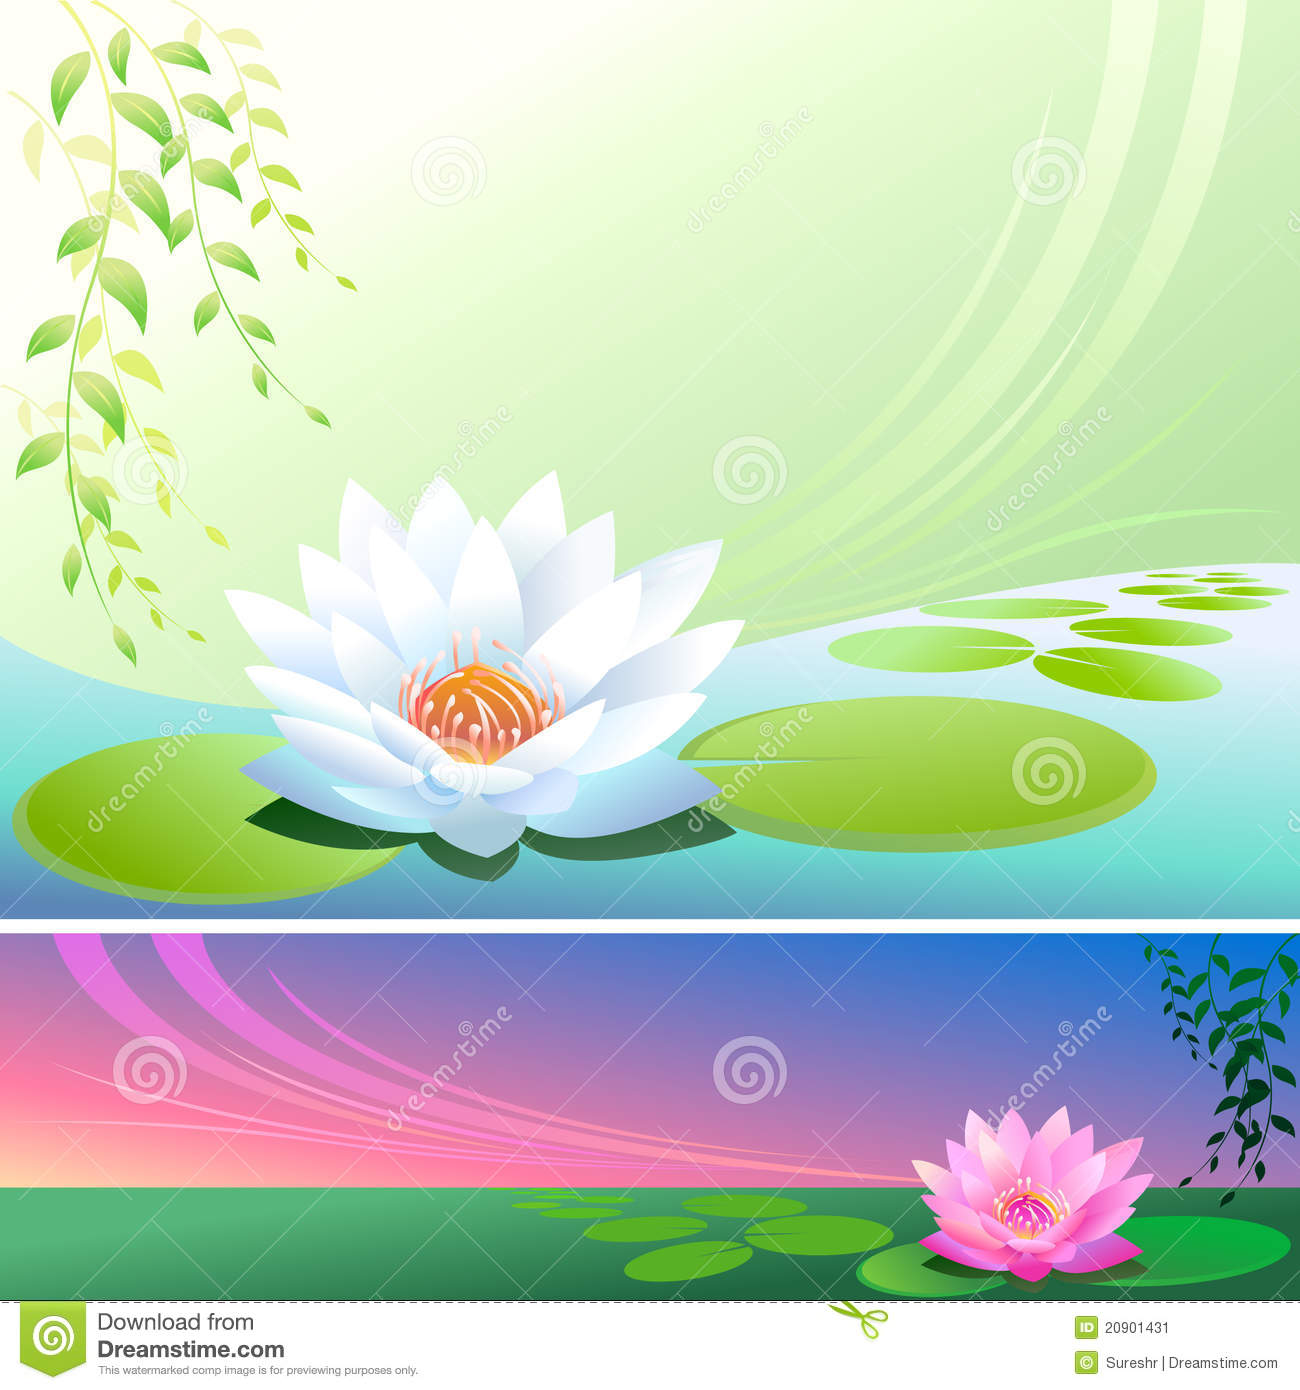 Buddha 3d Wallpaper Hd Flor De Loto Abstracta En Una Charca Vector Backgroun